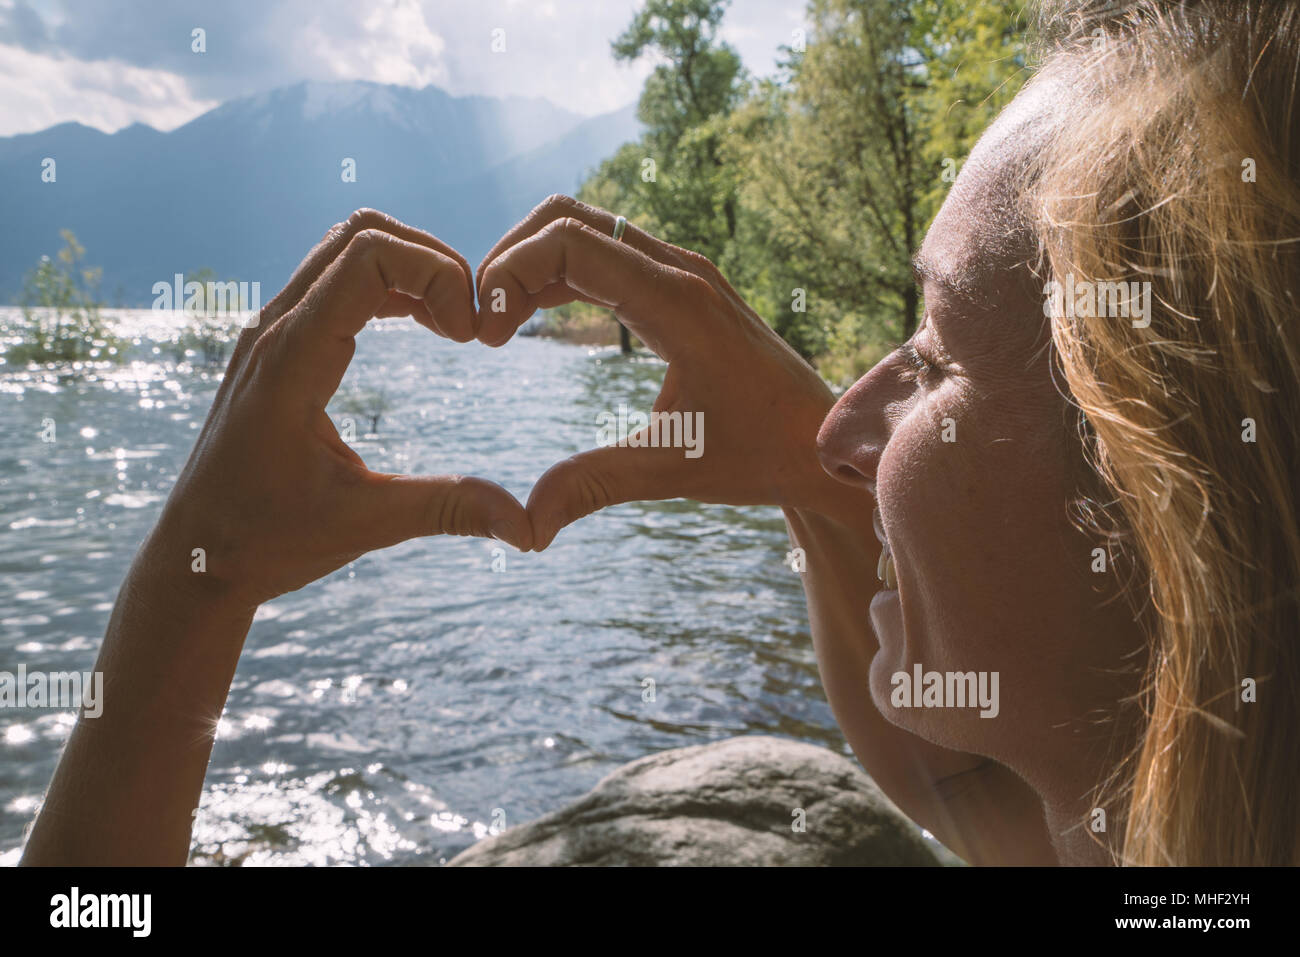 Young woman by the lake making heart shape with hands on mountain landscape, Shot in Ticino Canton, Switzerland, Europe. People travel environment Stock Photo